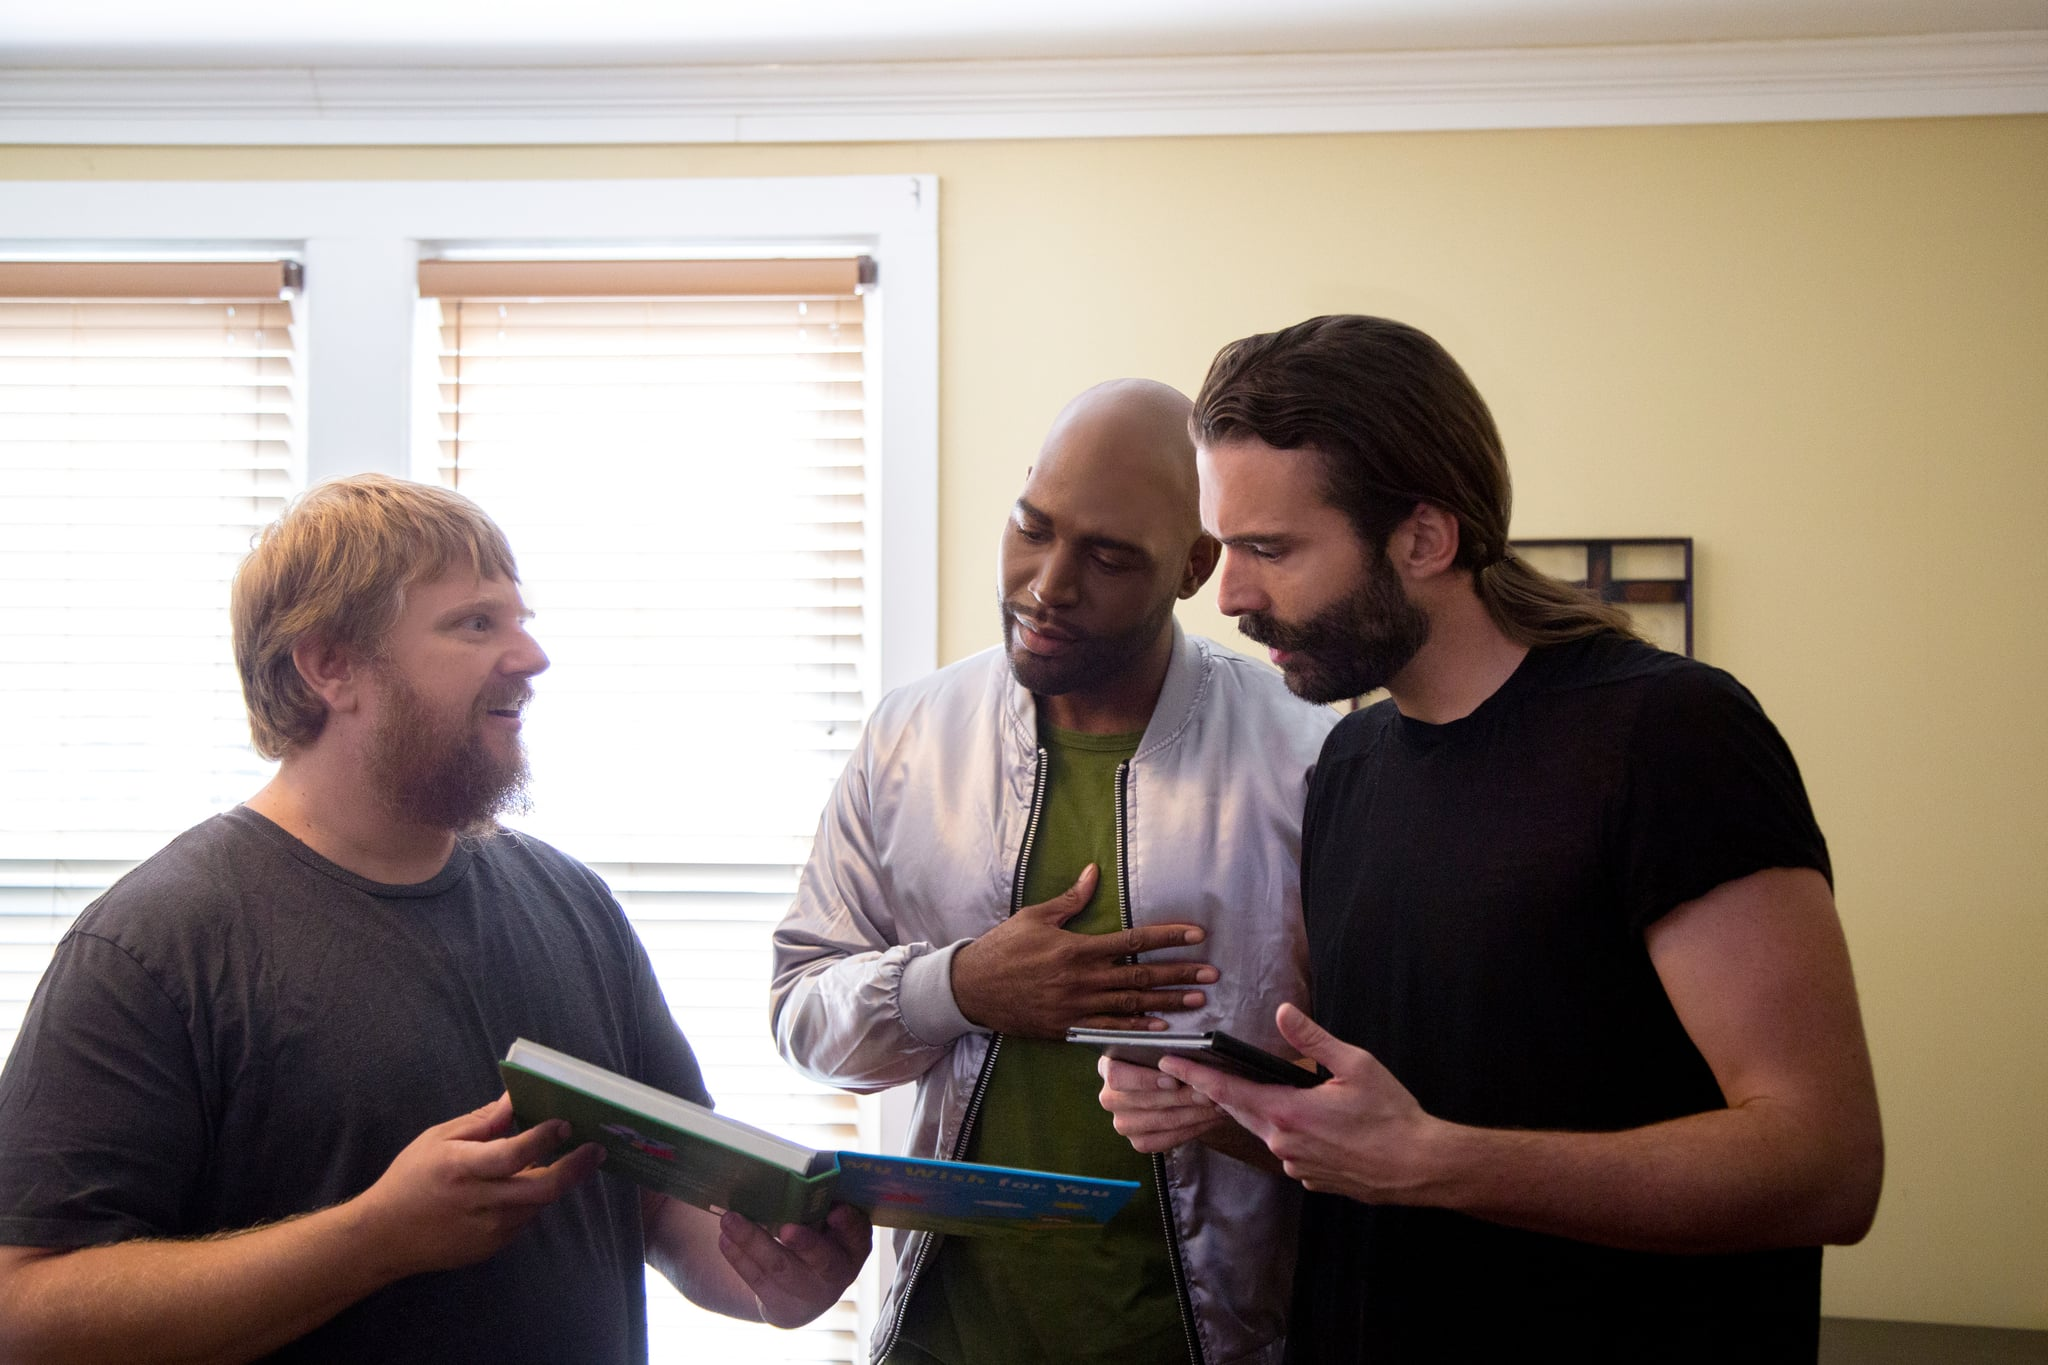 QUEER EYE, from left: Rob Elrod, Karamo Brown, Jonathan Van Ness, (Season 3, ep. 306, airs March 15, 2019). photo: Christopher Smith / Netflix / Courtesy: Everett Collection